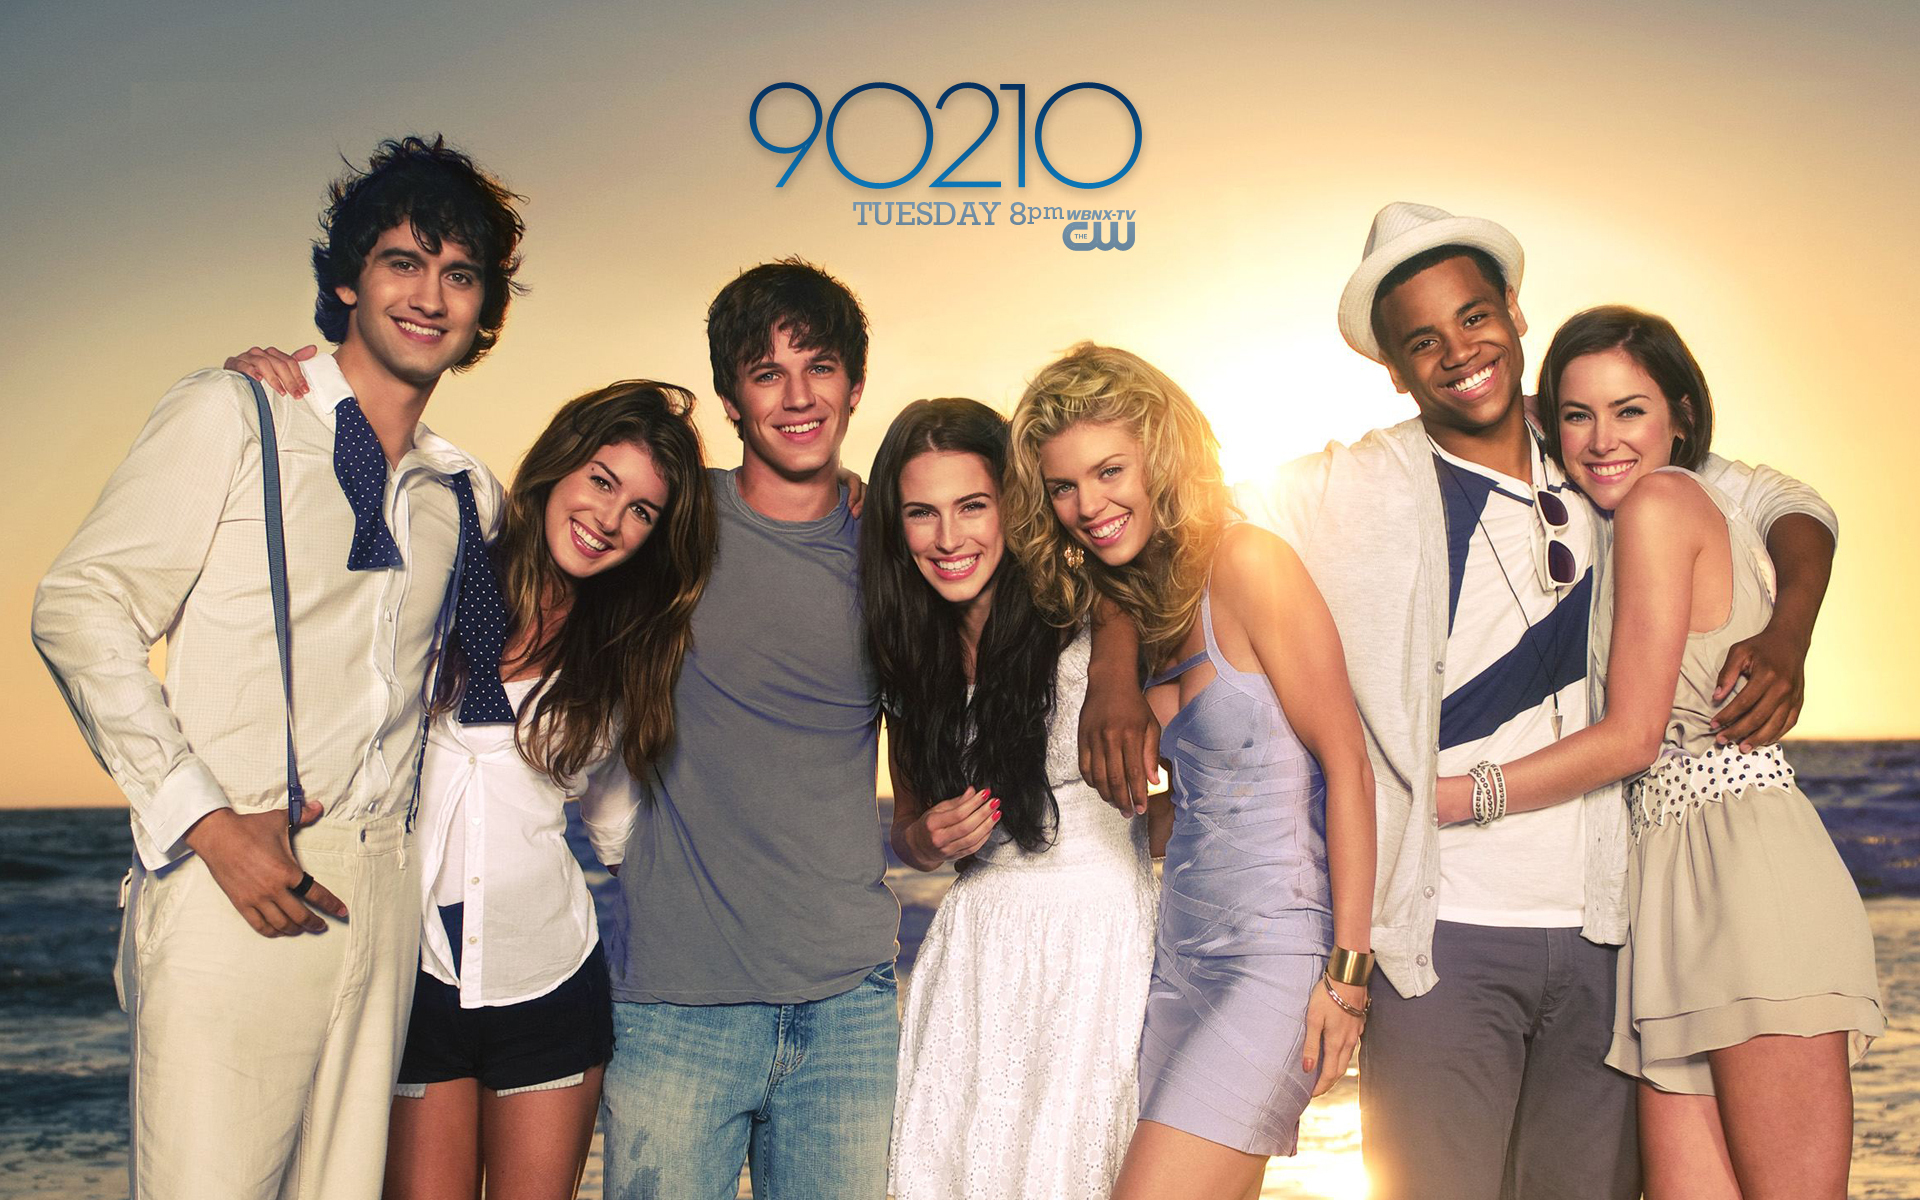 The cw 90210